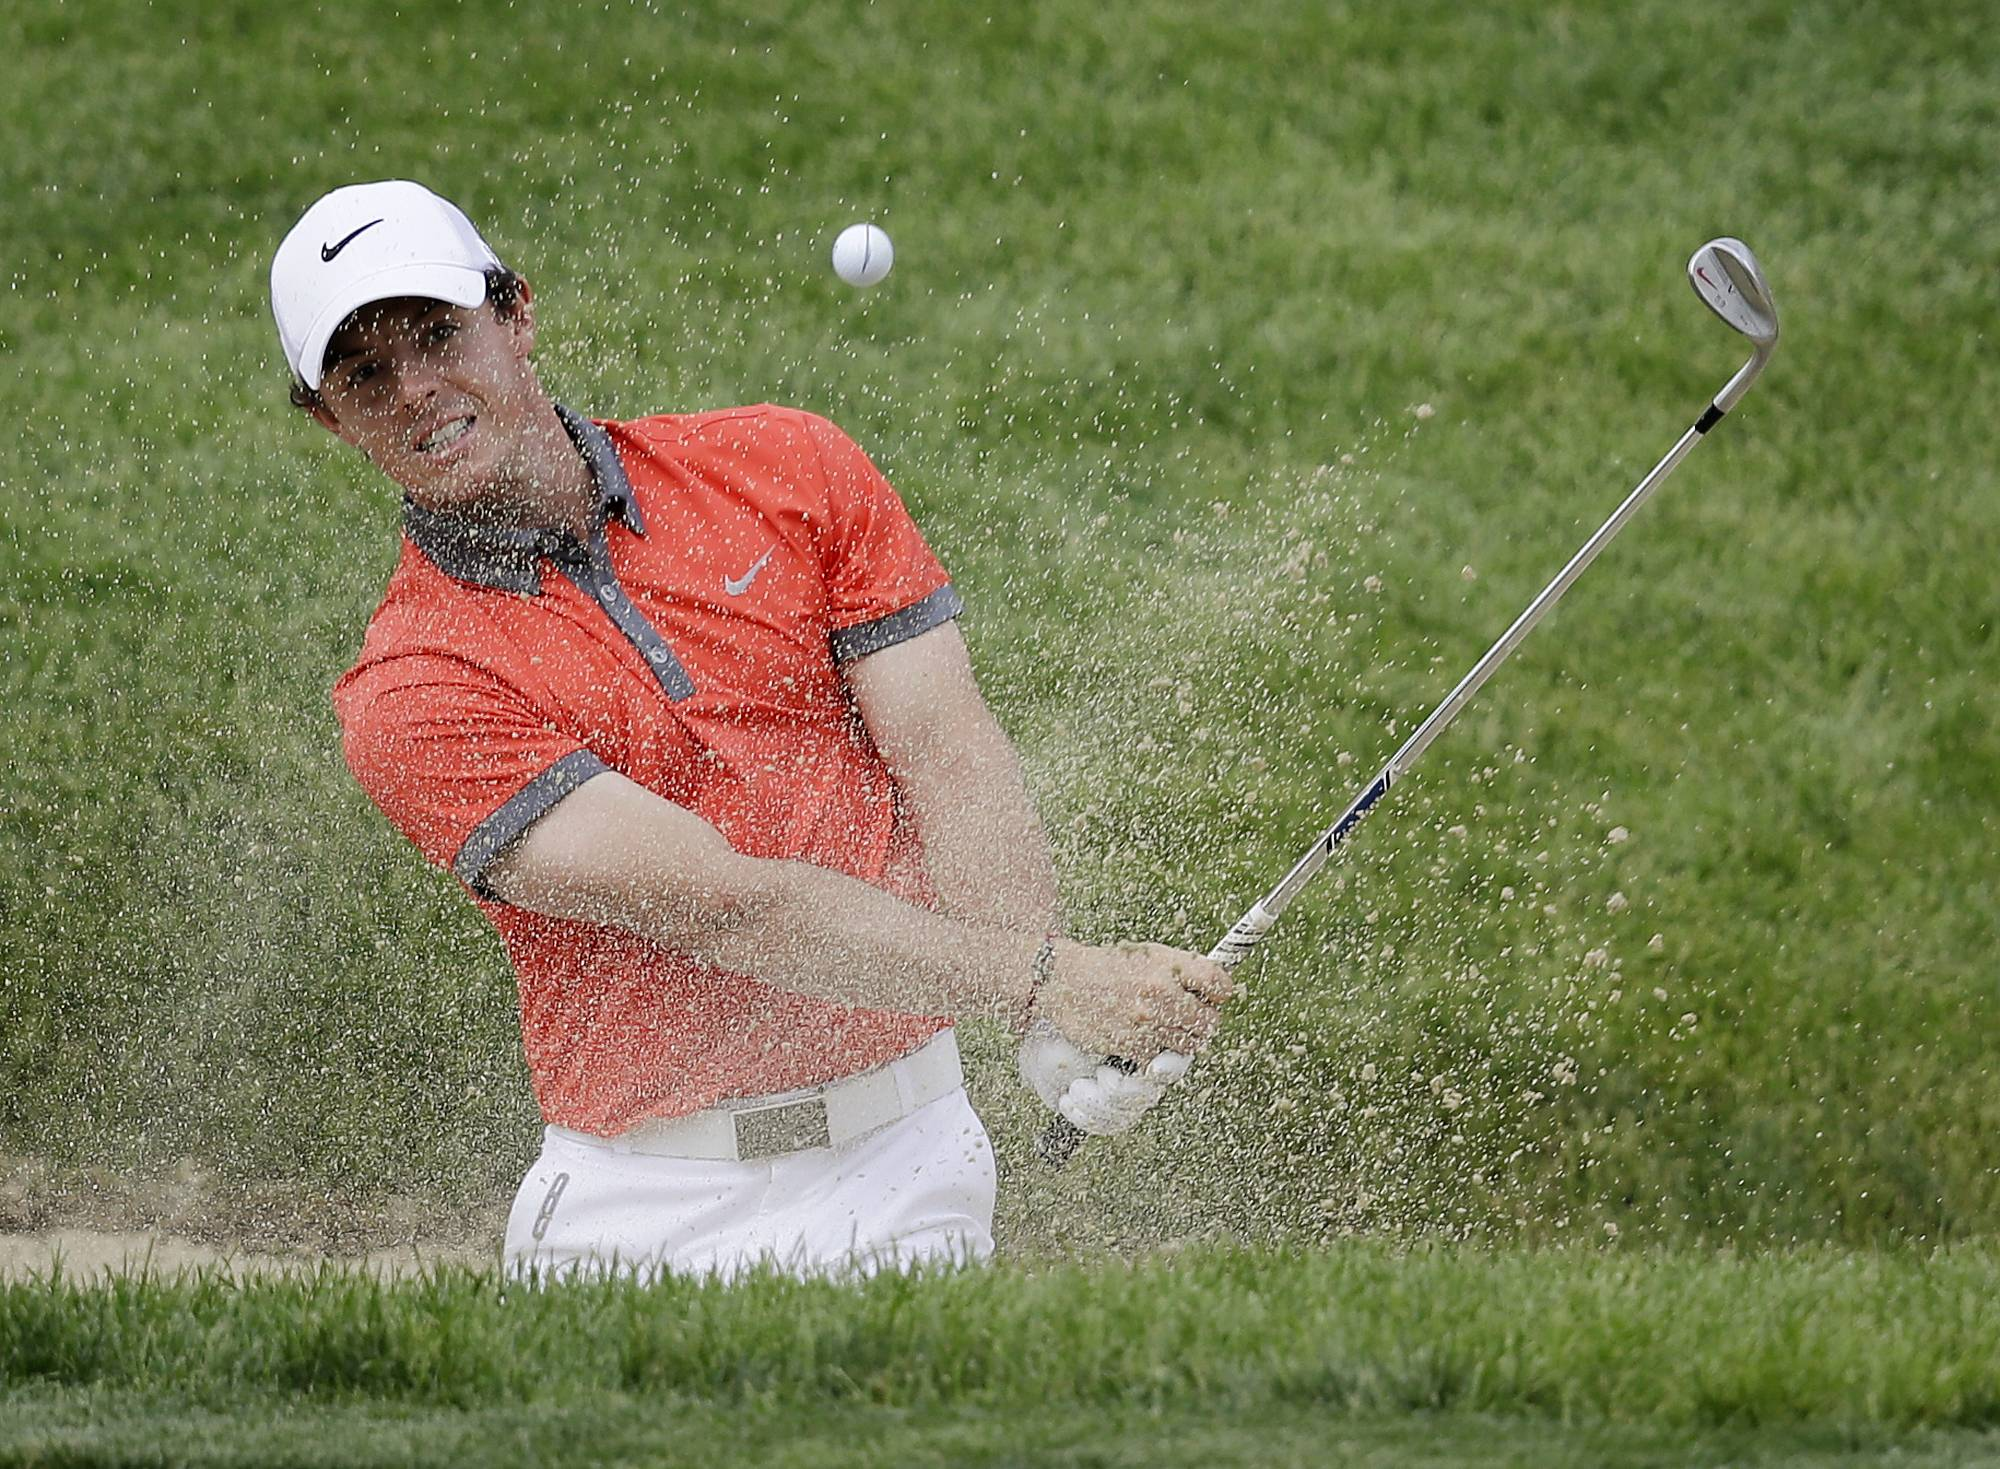 Whether it's his health or his personal life, Rory McIlroy is not easily distracted when he's on top of his game. McIlroy made two eagles and three birdies on the back nine at Muirfield Village — along with a double bogey — on his way to a 9-under 63 and a three-shot lead Thursday after the opening round of the Memorial.